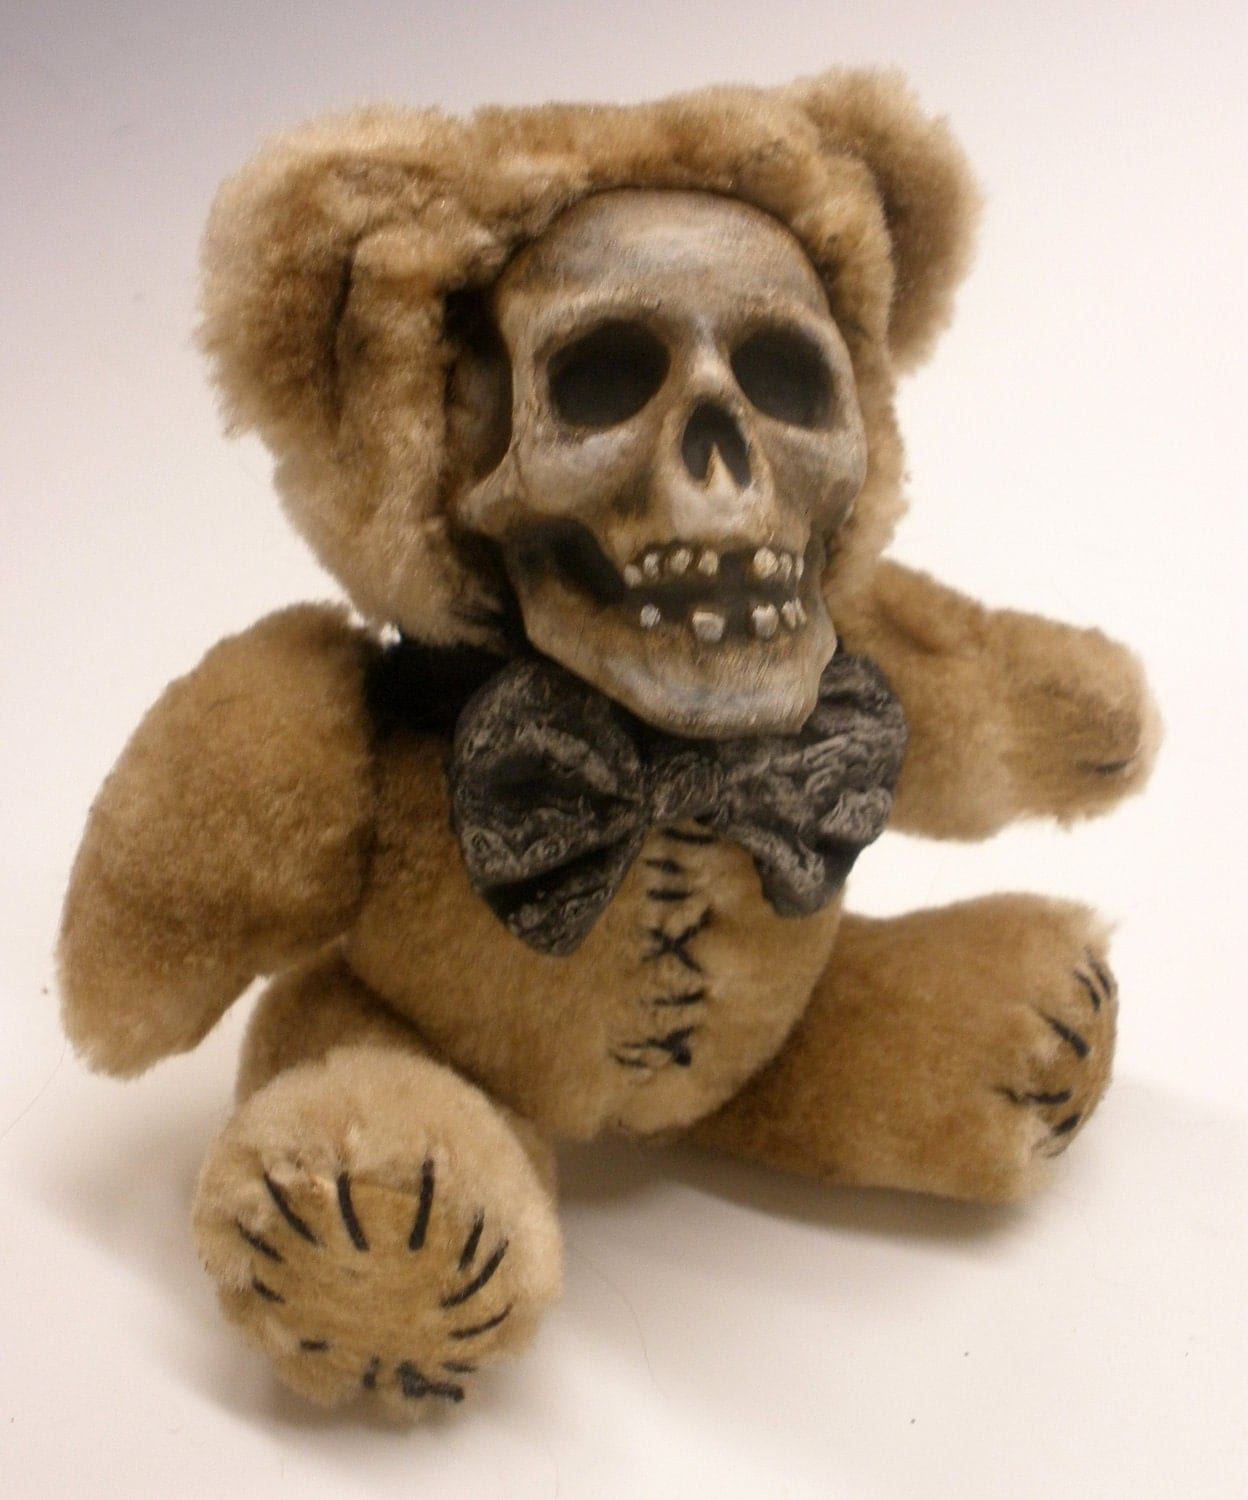 039a wild teddy bear ate my beaver039 and other creepy stories - 3 8